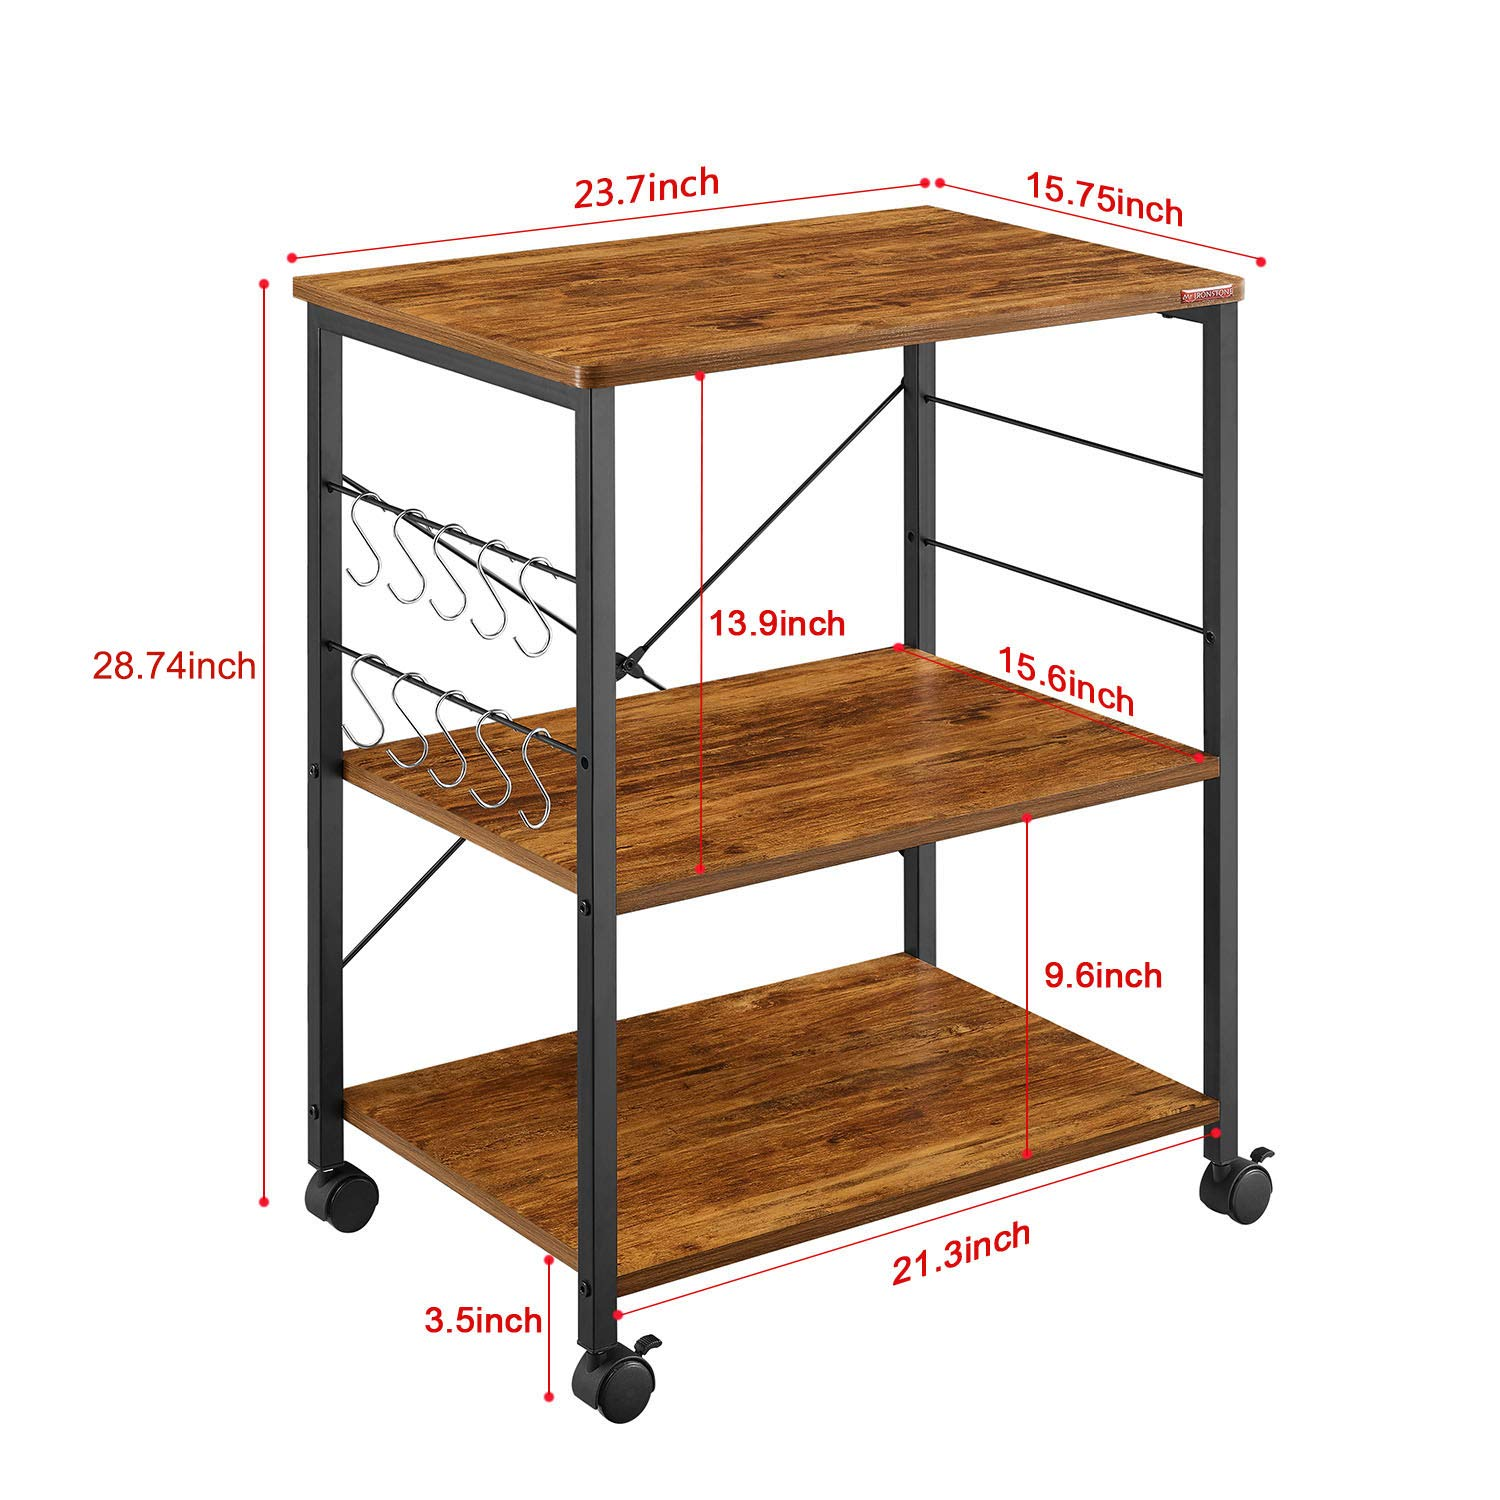 Mr IRONSTONE Kitchen Microwave Cart 3-Tier Kitchen Utility Cart Vintage Rolling Bakers Rack with 10 Hooks for Living Room Decoration by Mr IRONSTONE (Image #6)